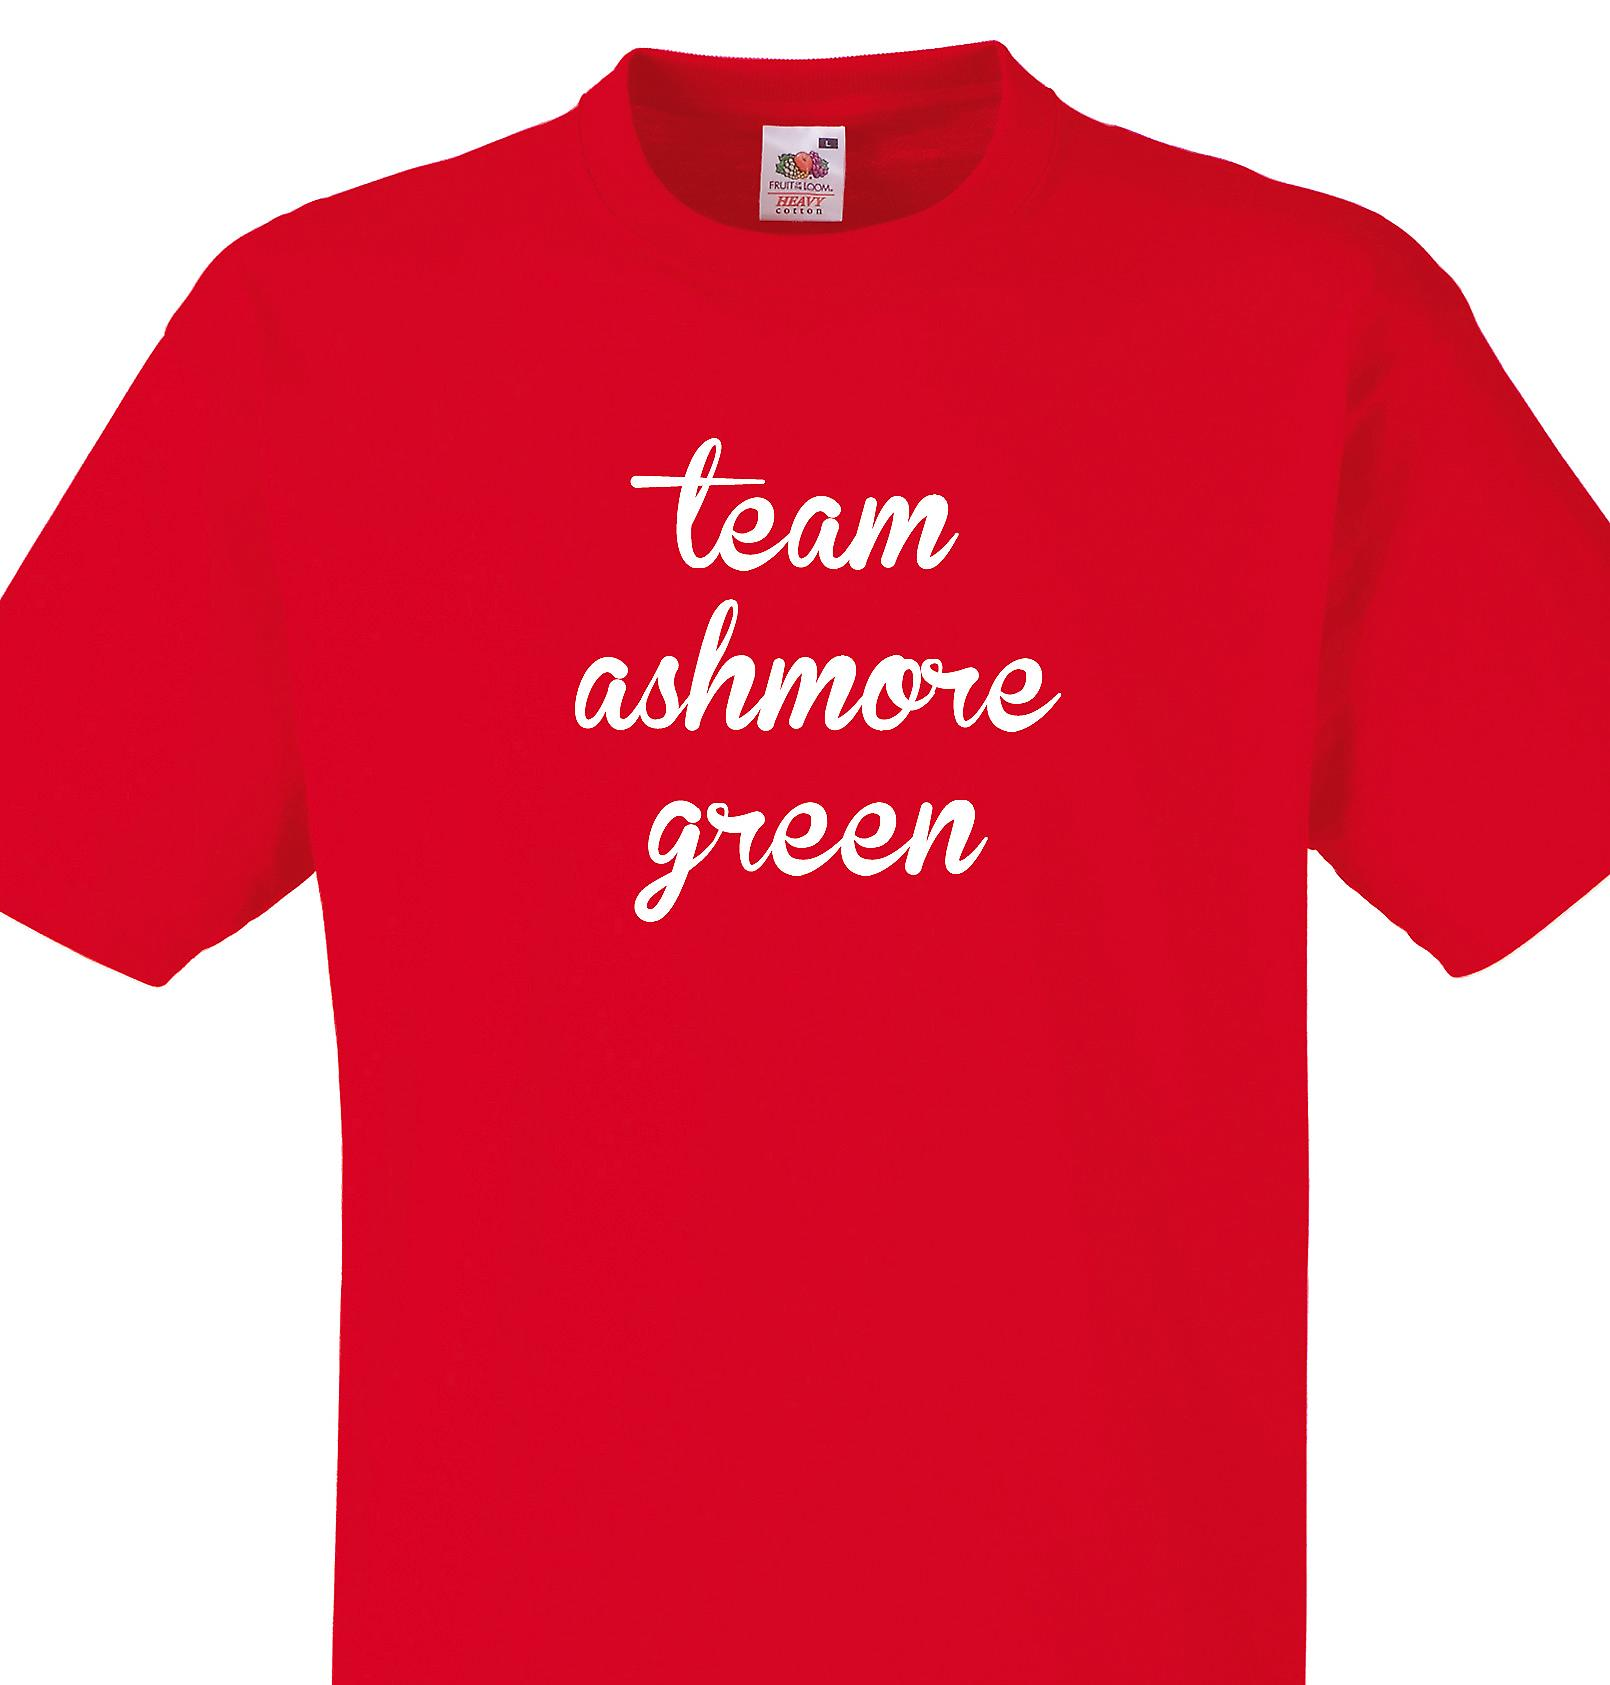 Team Ashmore green Red T shirt